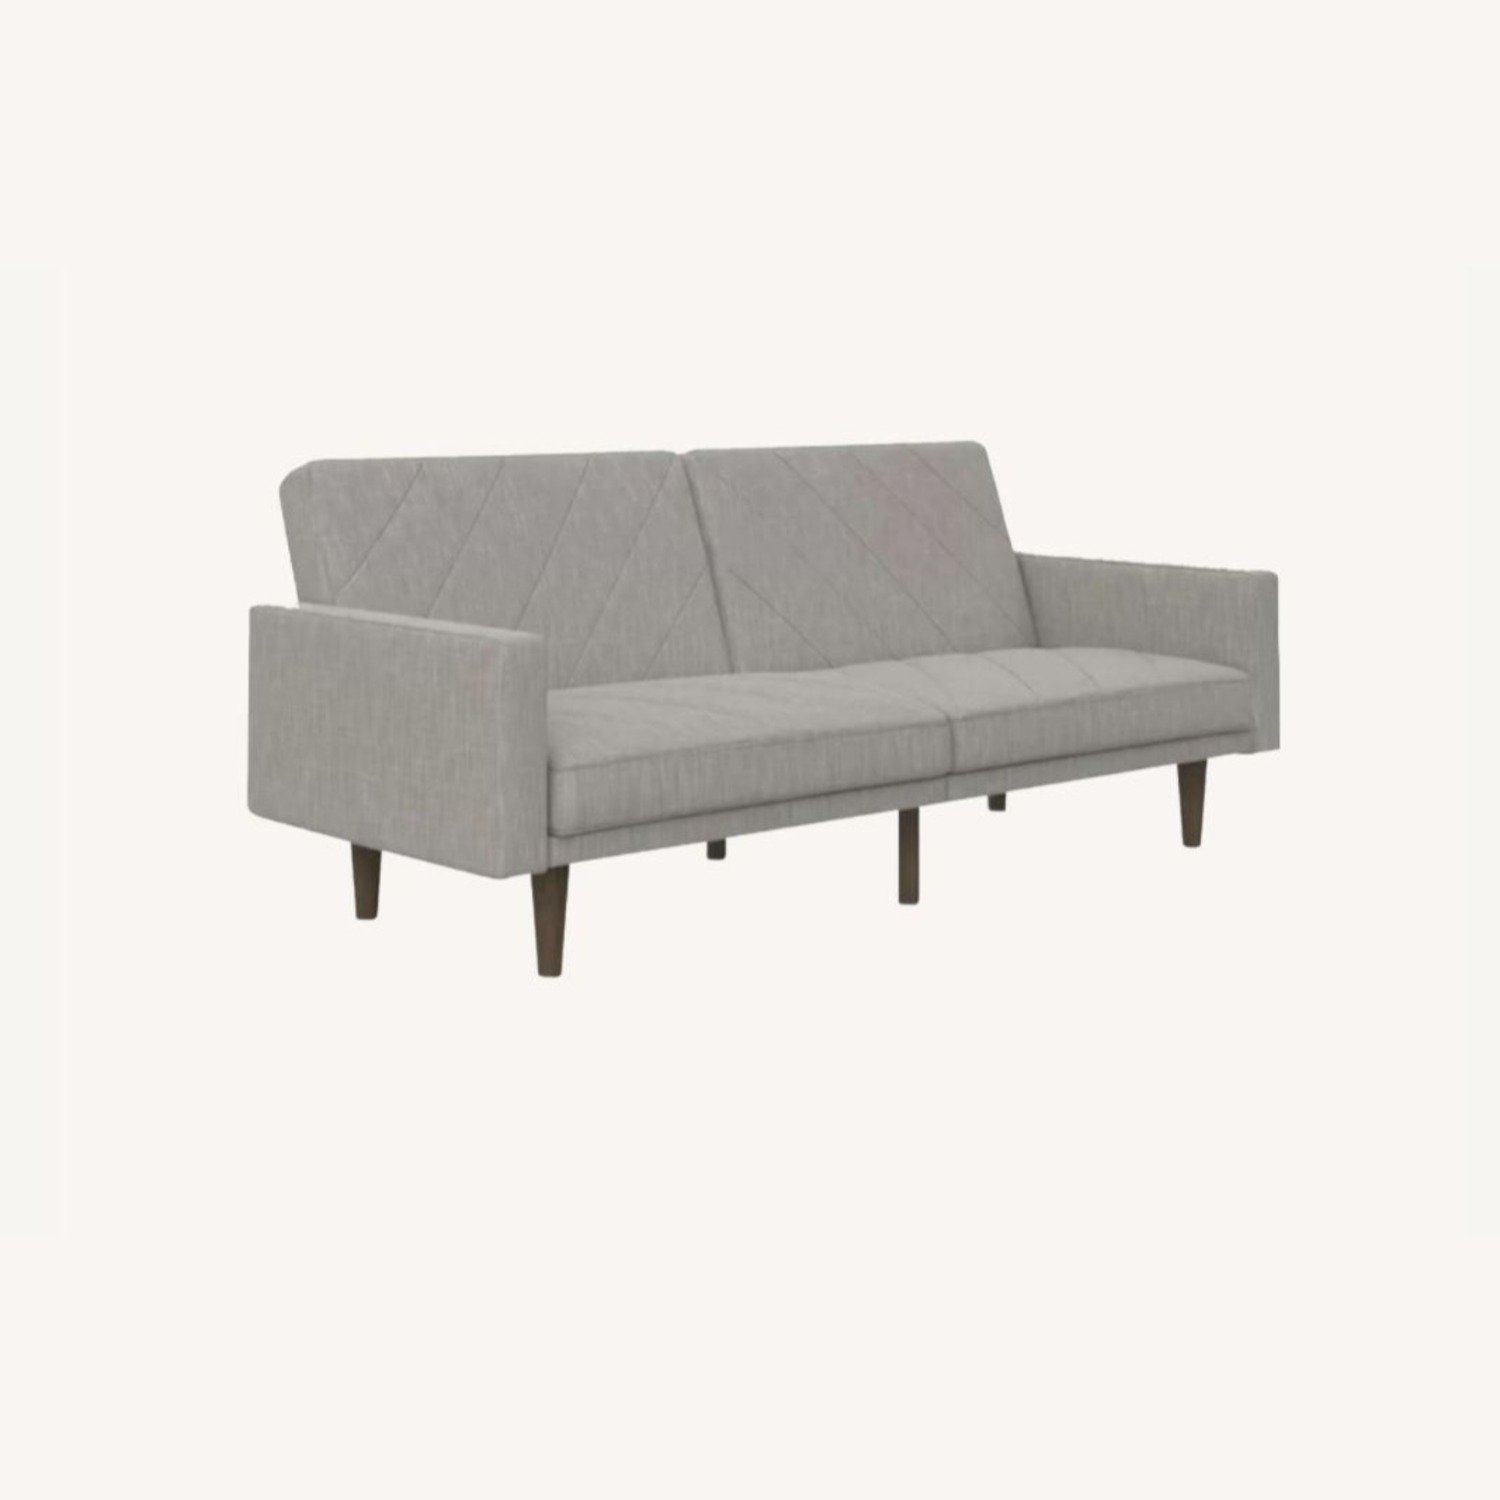 DHP Furniture Austen Twin Split Back Convertible Sofa - image-0